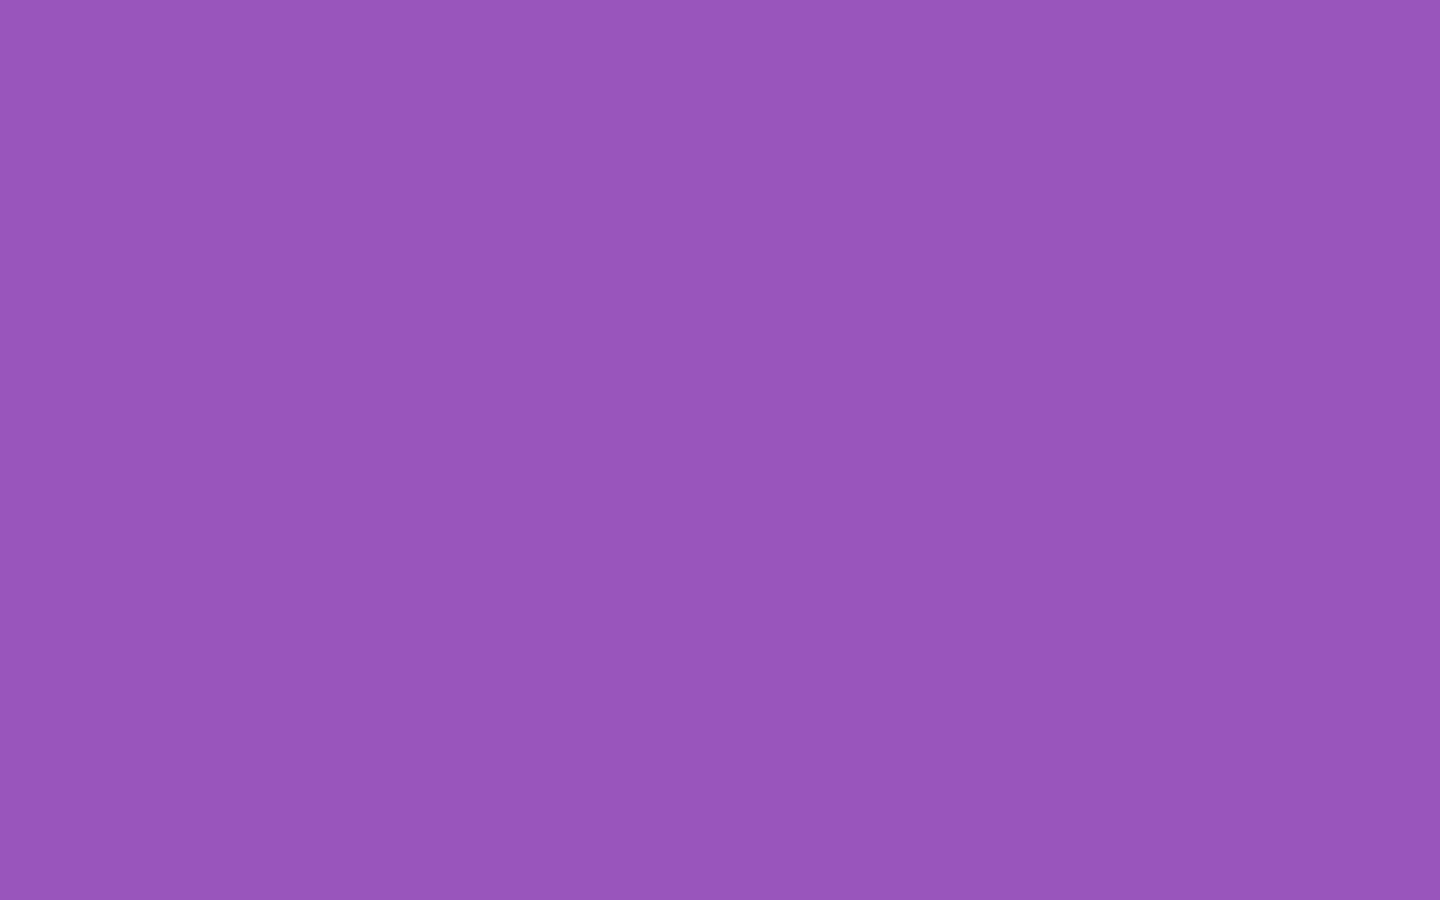 1440x900 Deep Lilac Solid Color Background